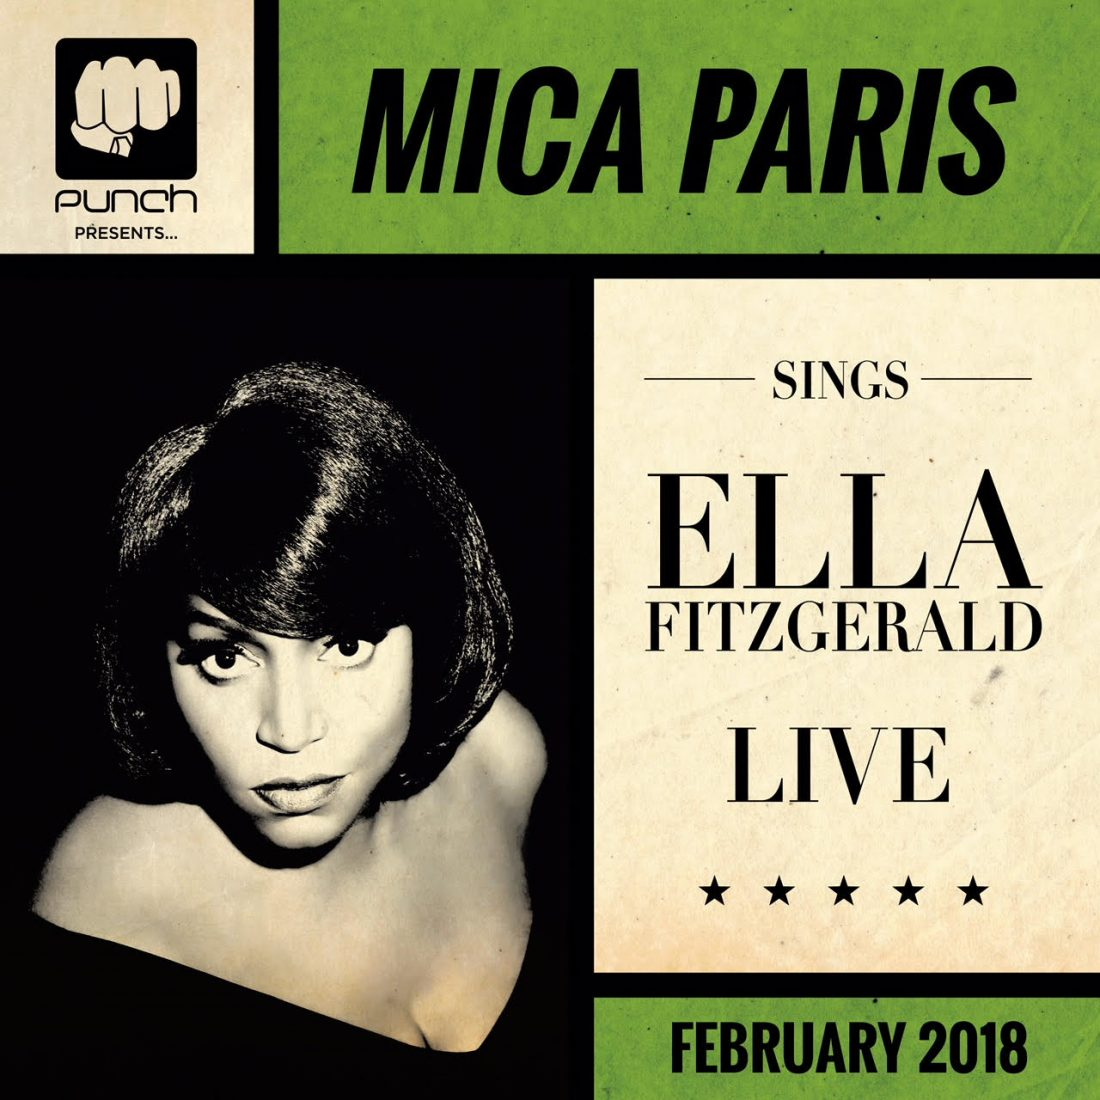 Meeting Mica: A woman in music Mica Paris